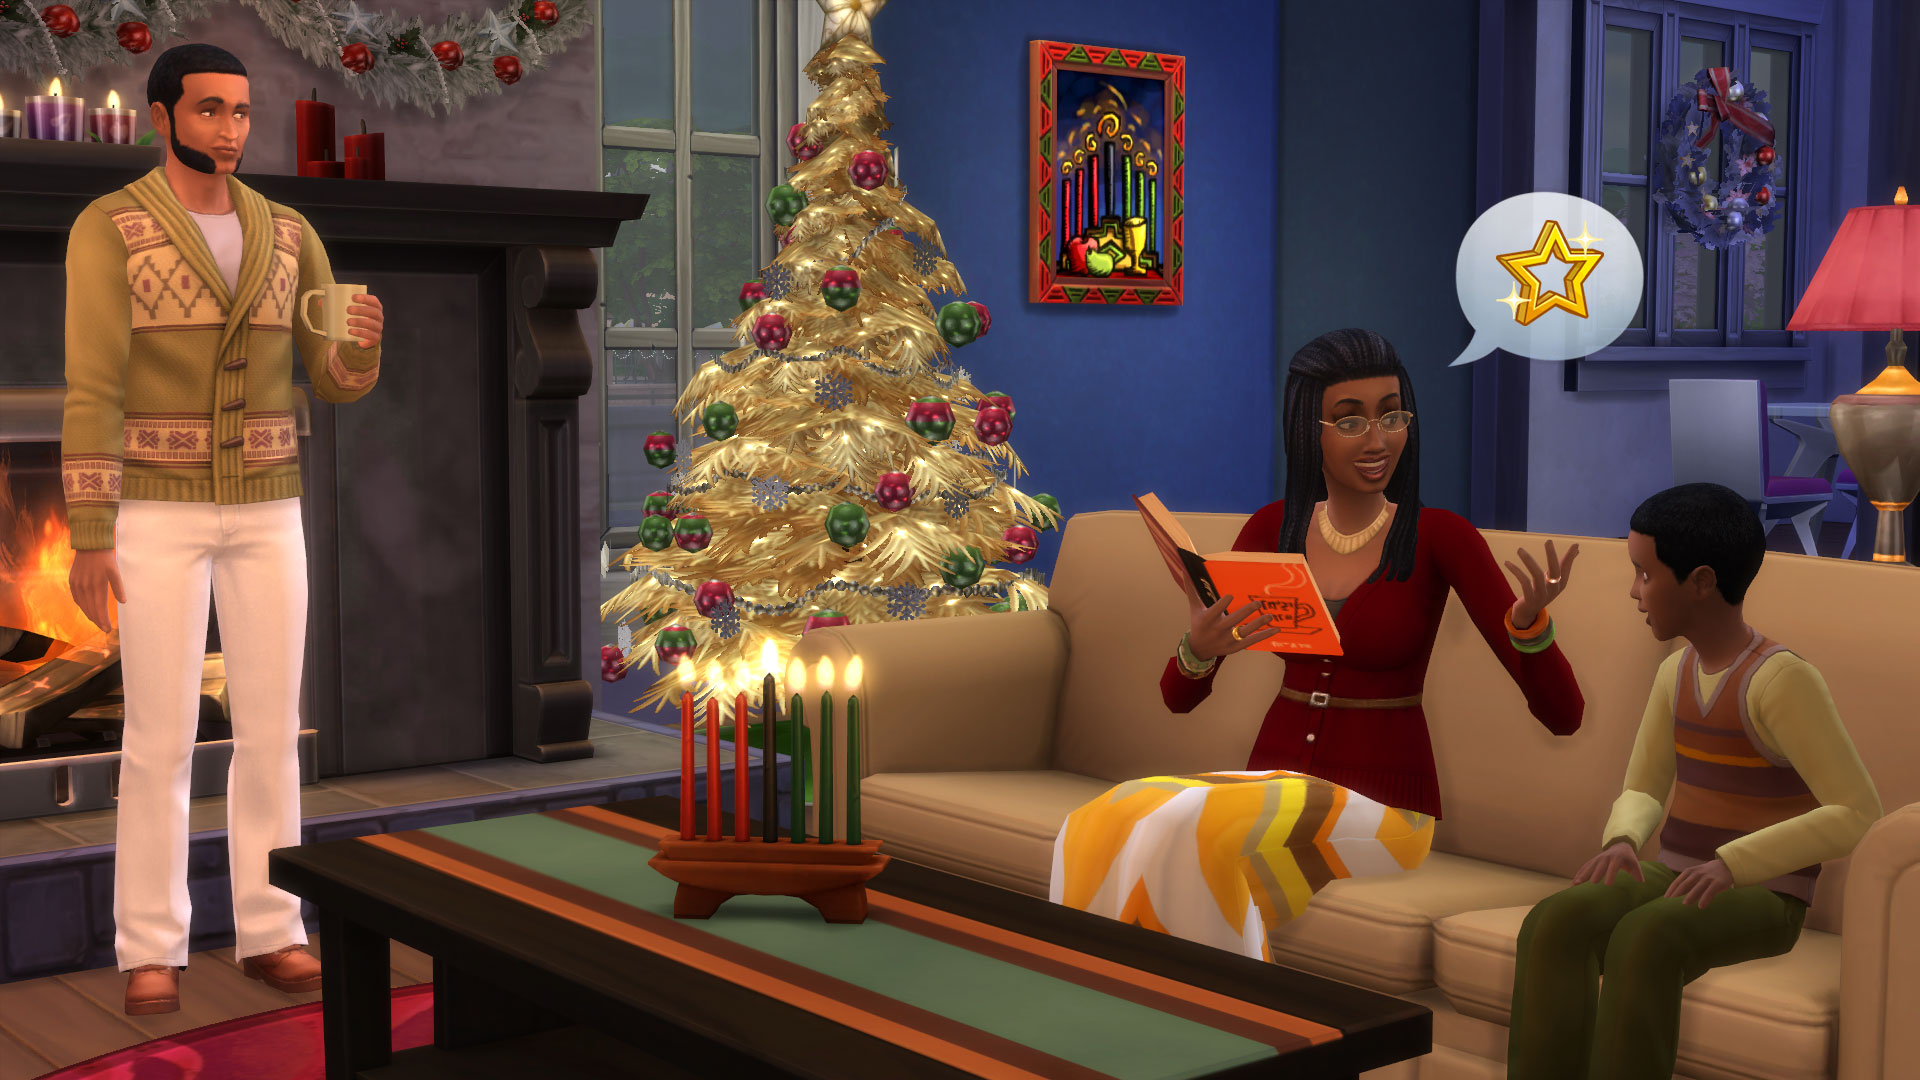 TS4_399_HOLIDAY_04_004